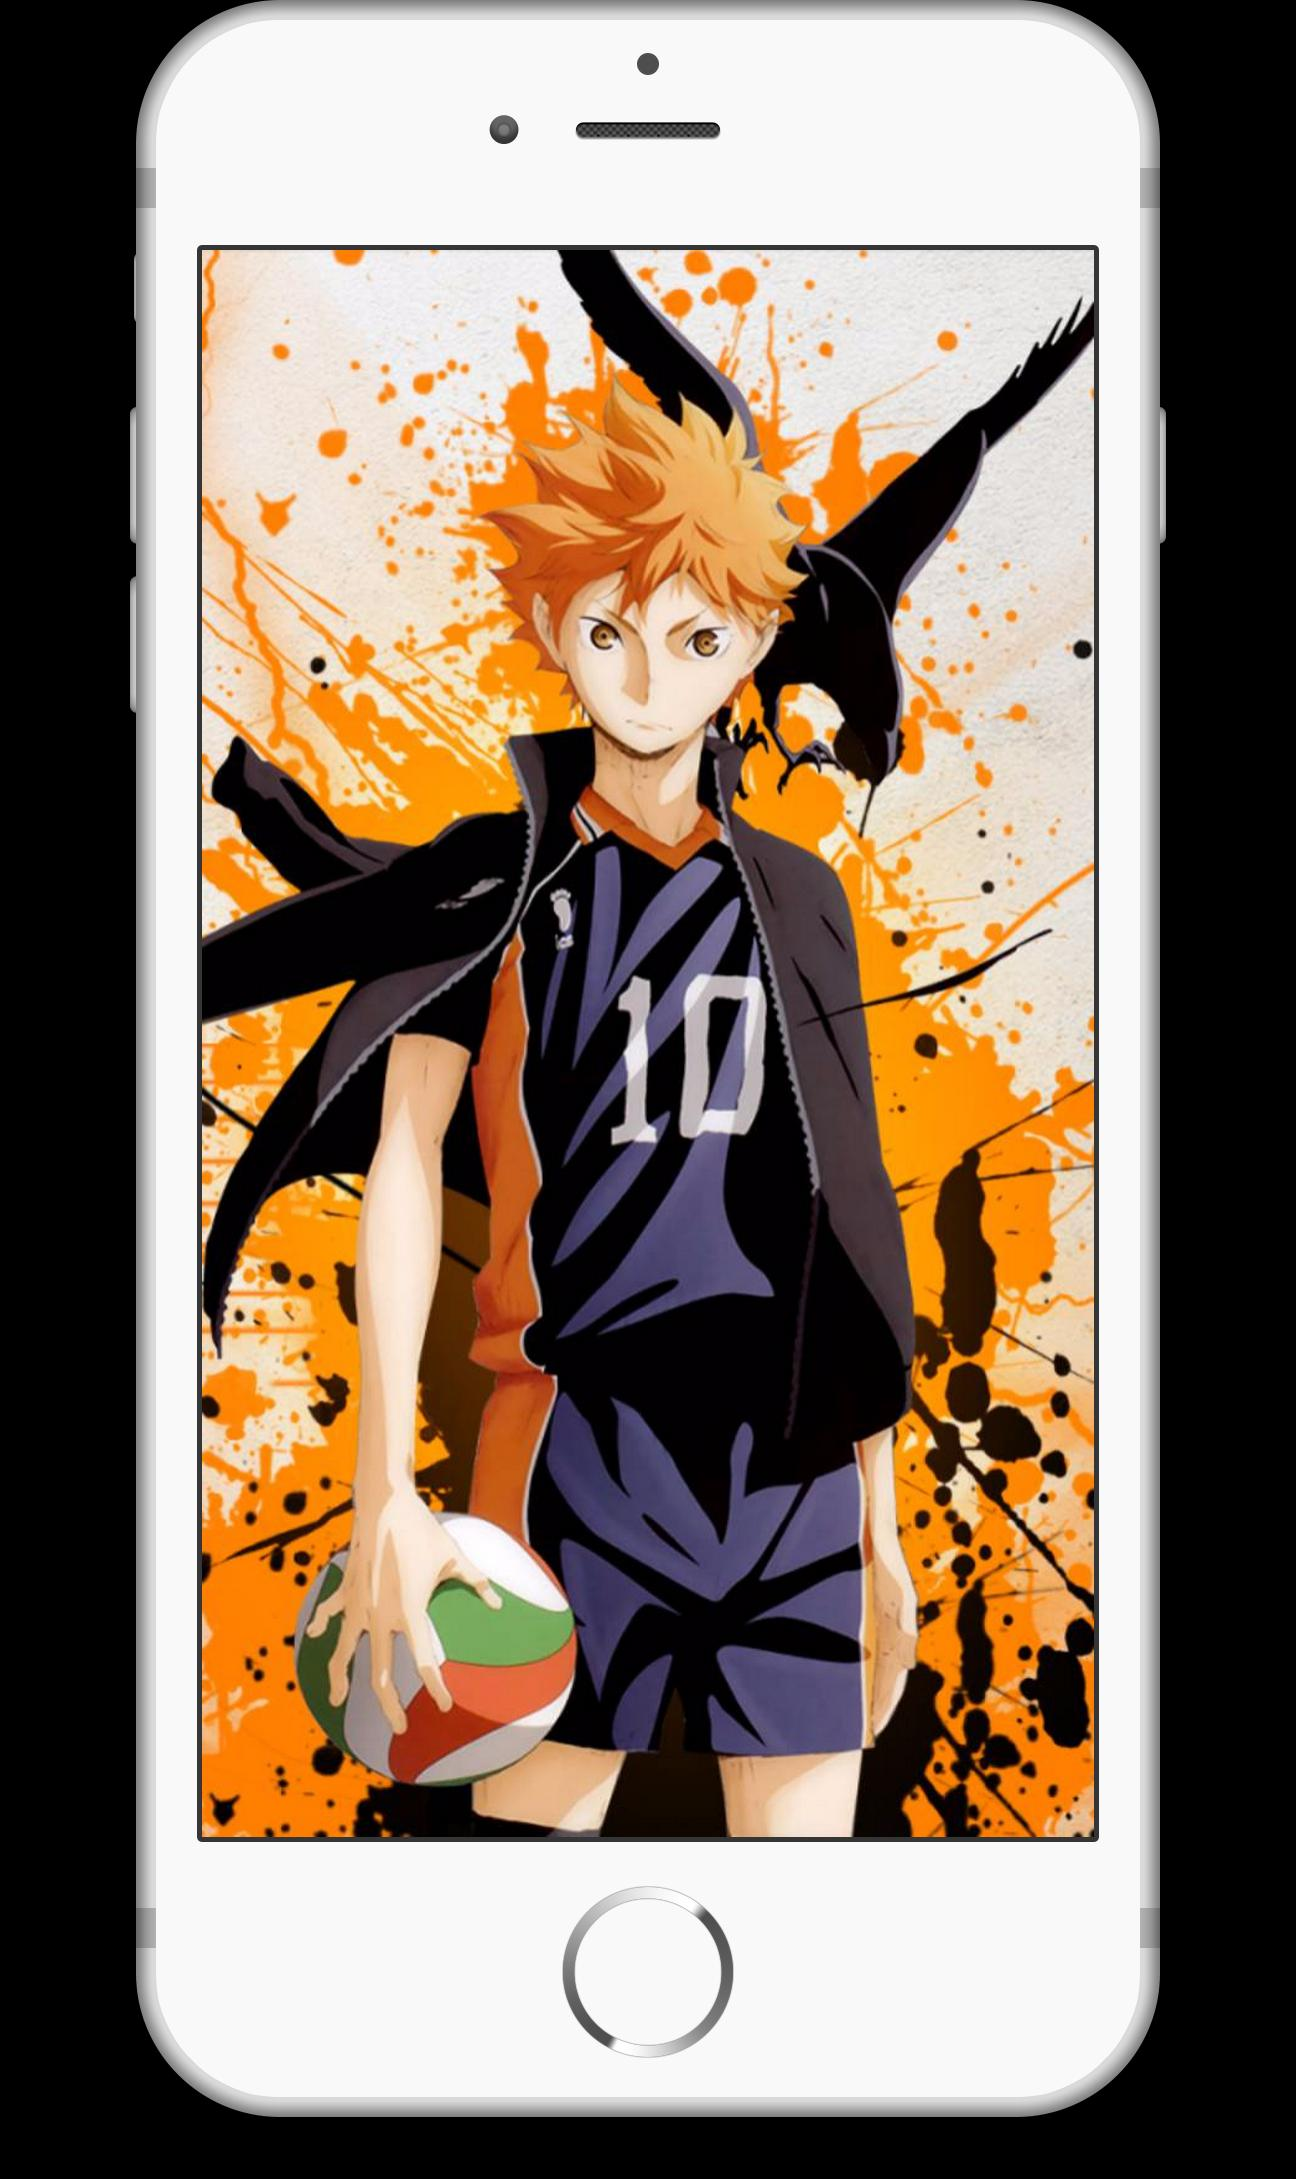 Haikyuu Anime Wallpapers 4K HD 2018 for Android - APK Download